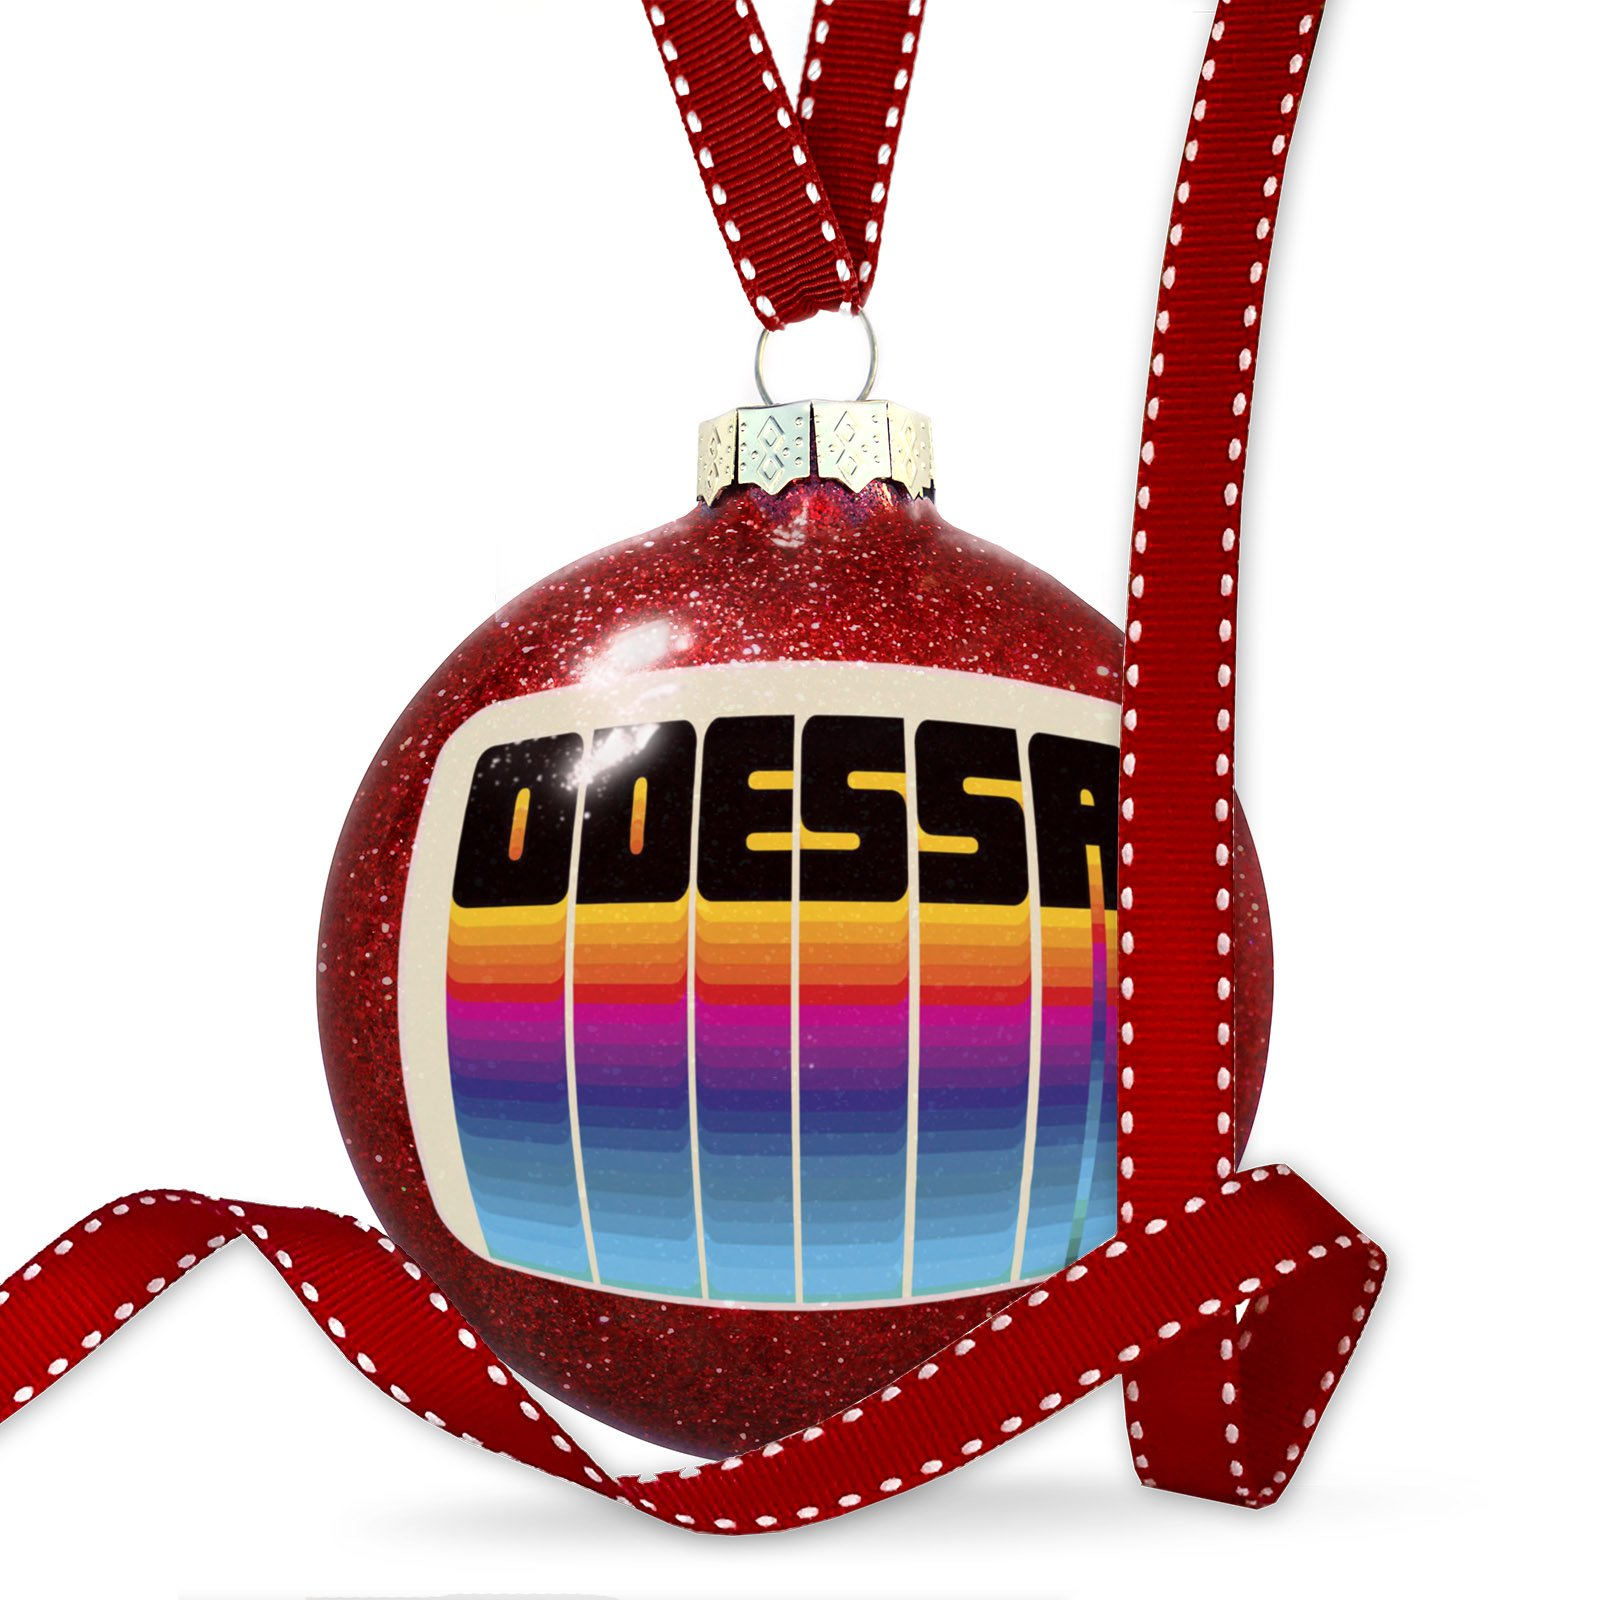 Christmas Decoration Retro Cites States Countries Odessa Ornament by NEONBLOND (Image #1)